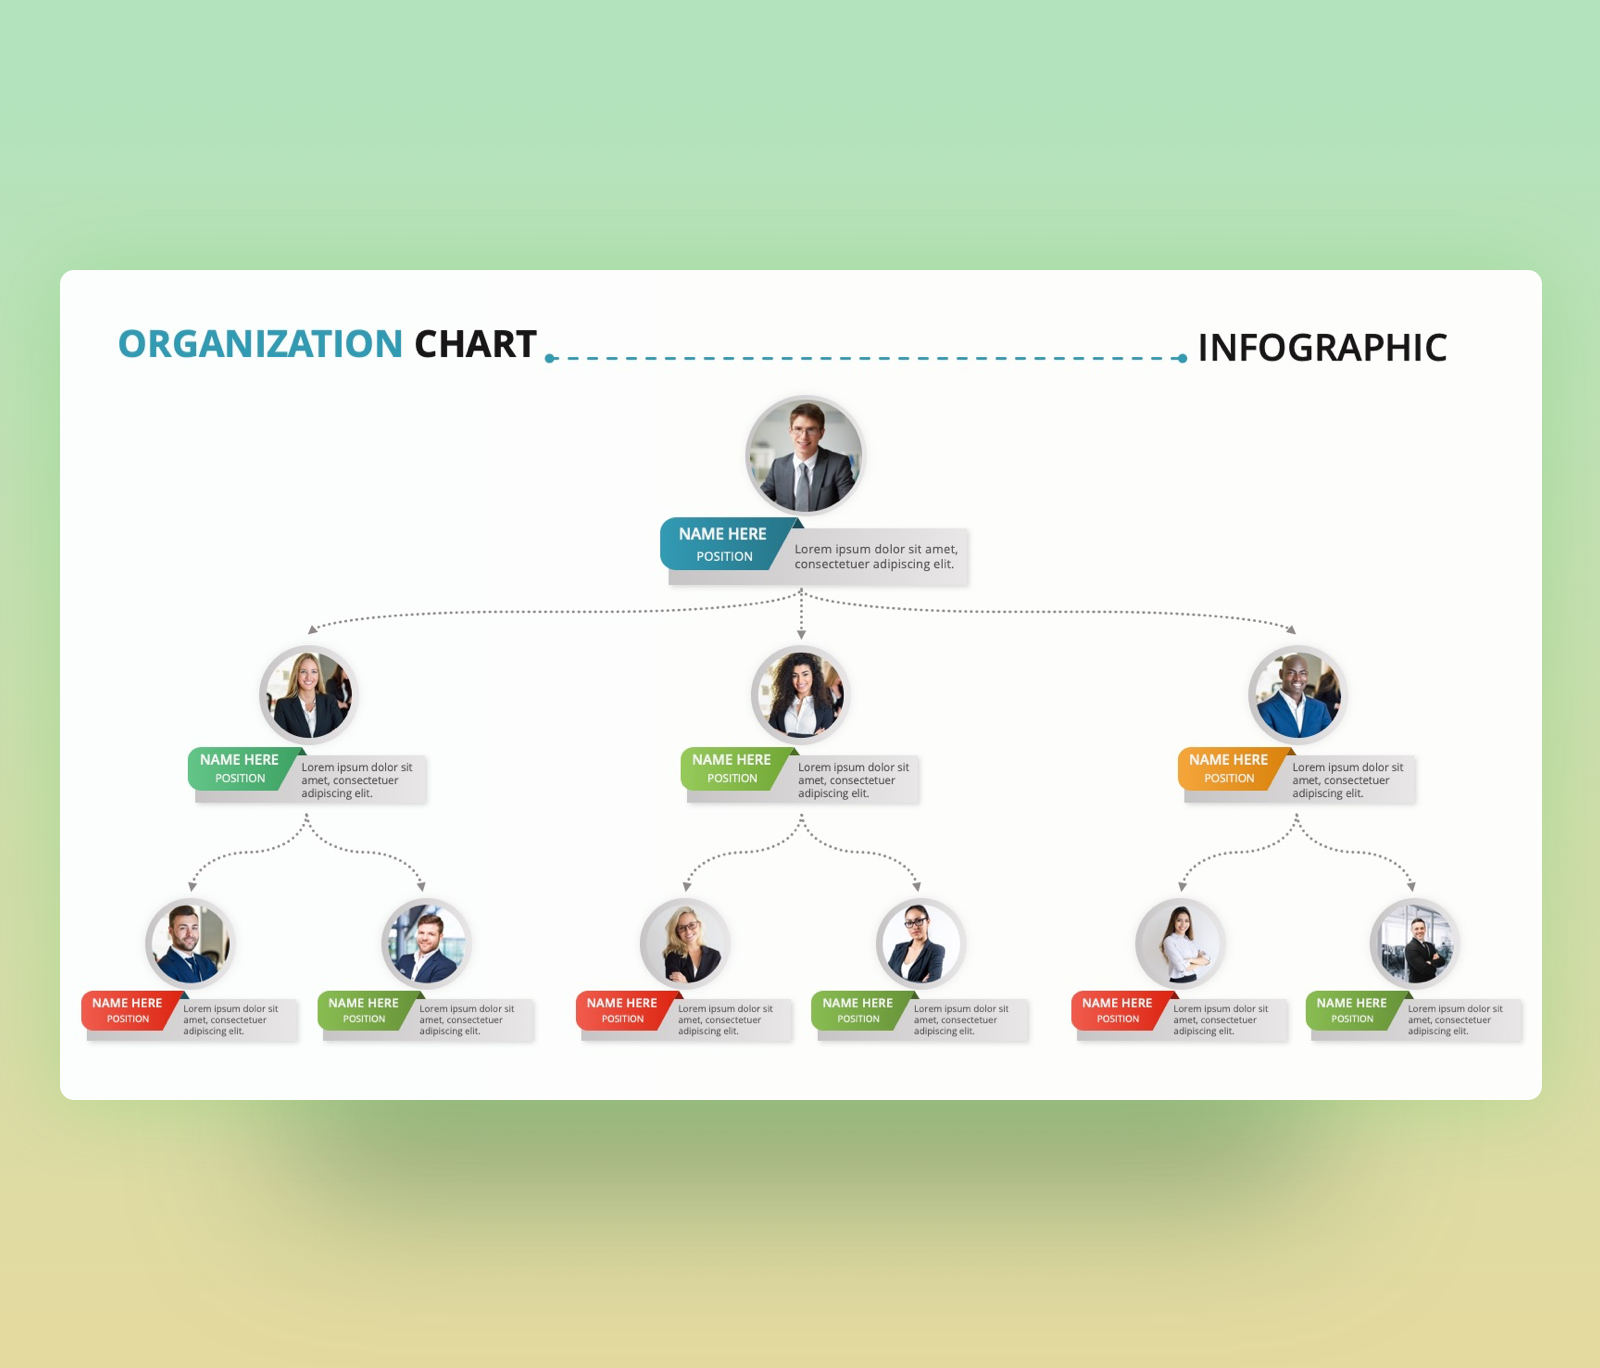 Team Organization Chart – PowerPoint Slide Template